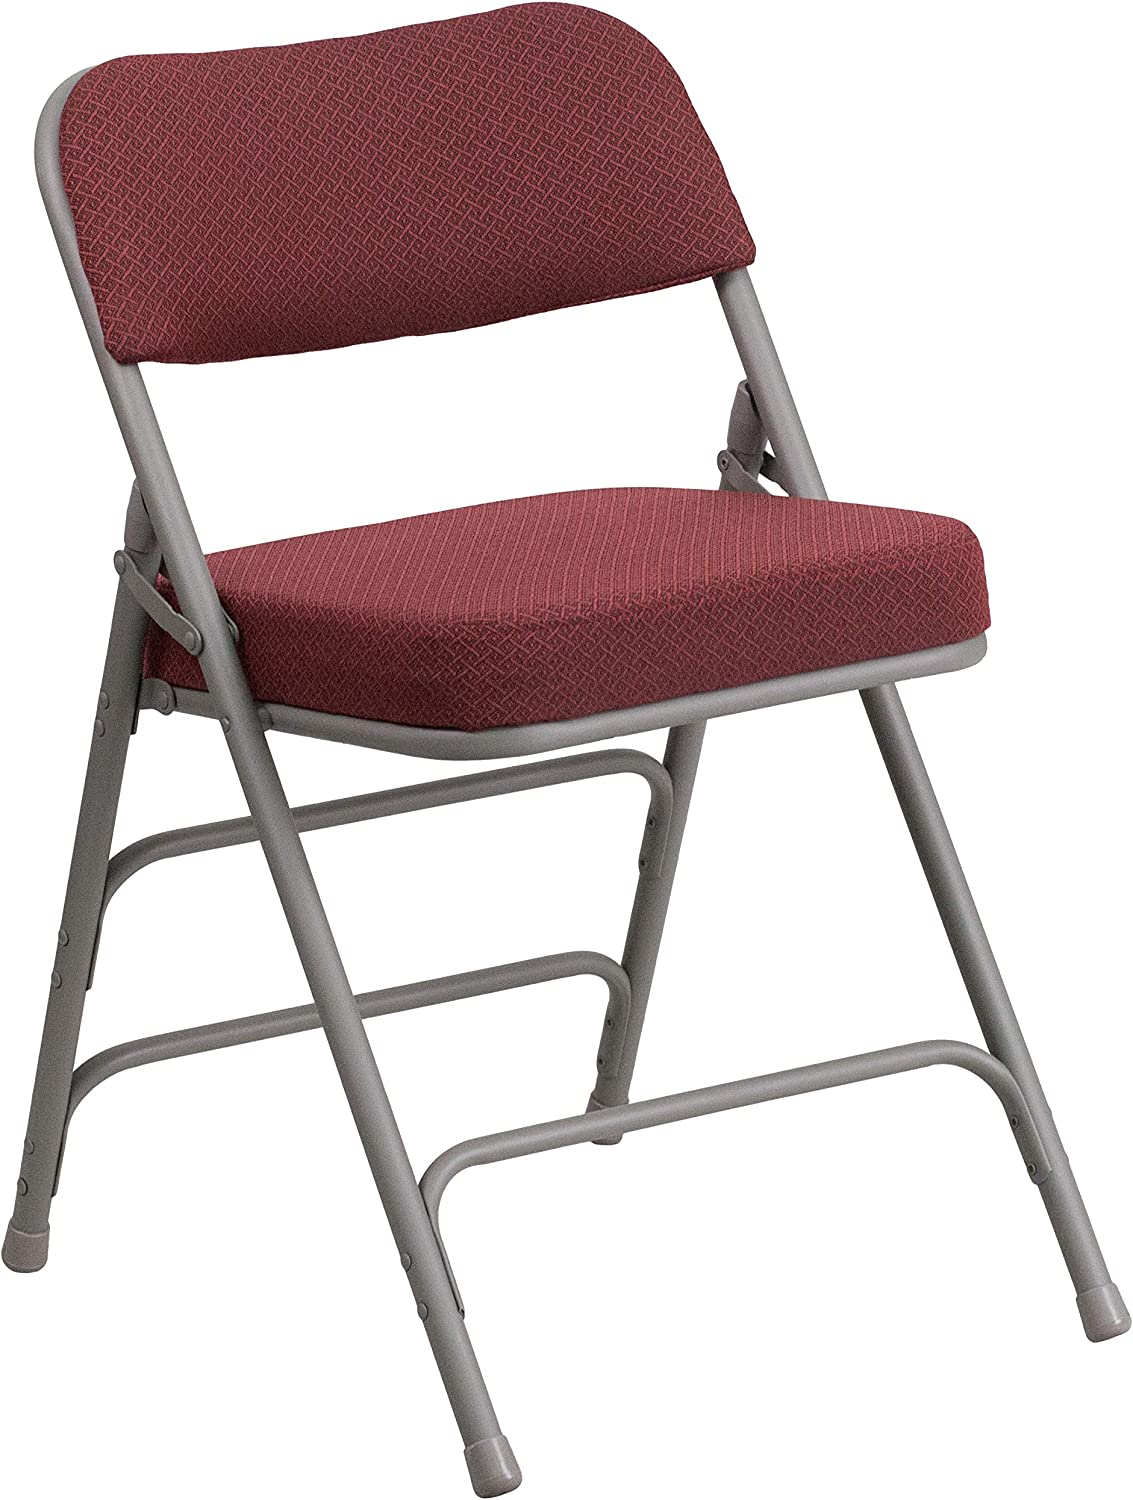 Flash Furniture AW-MC320AF-BG-GG Hercules Series Premium Curved Triple Braced and Double Hinged Burgundy Fabric Upholstered Metal Folding Chair